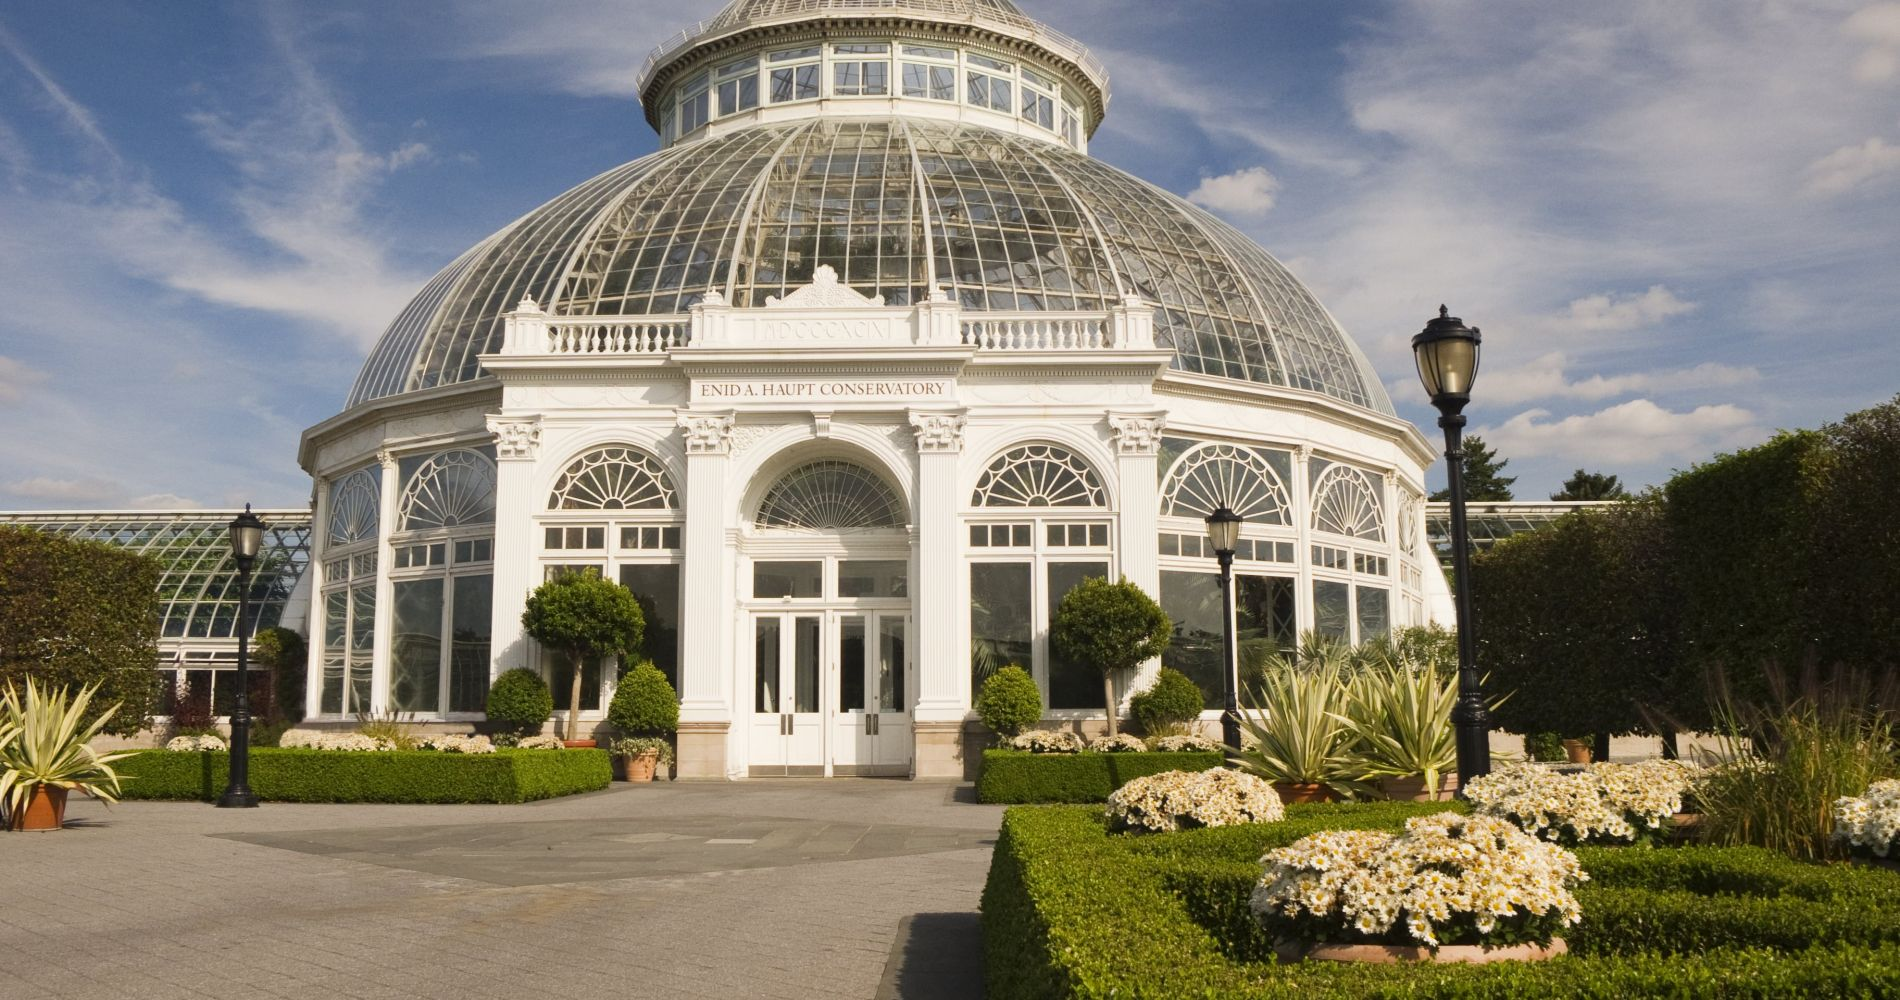 New York Main Attractions with The New York Botanical Garden